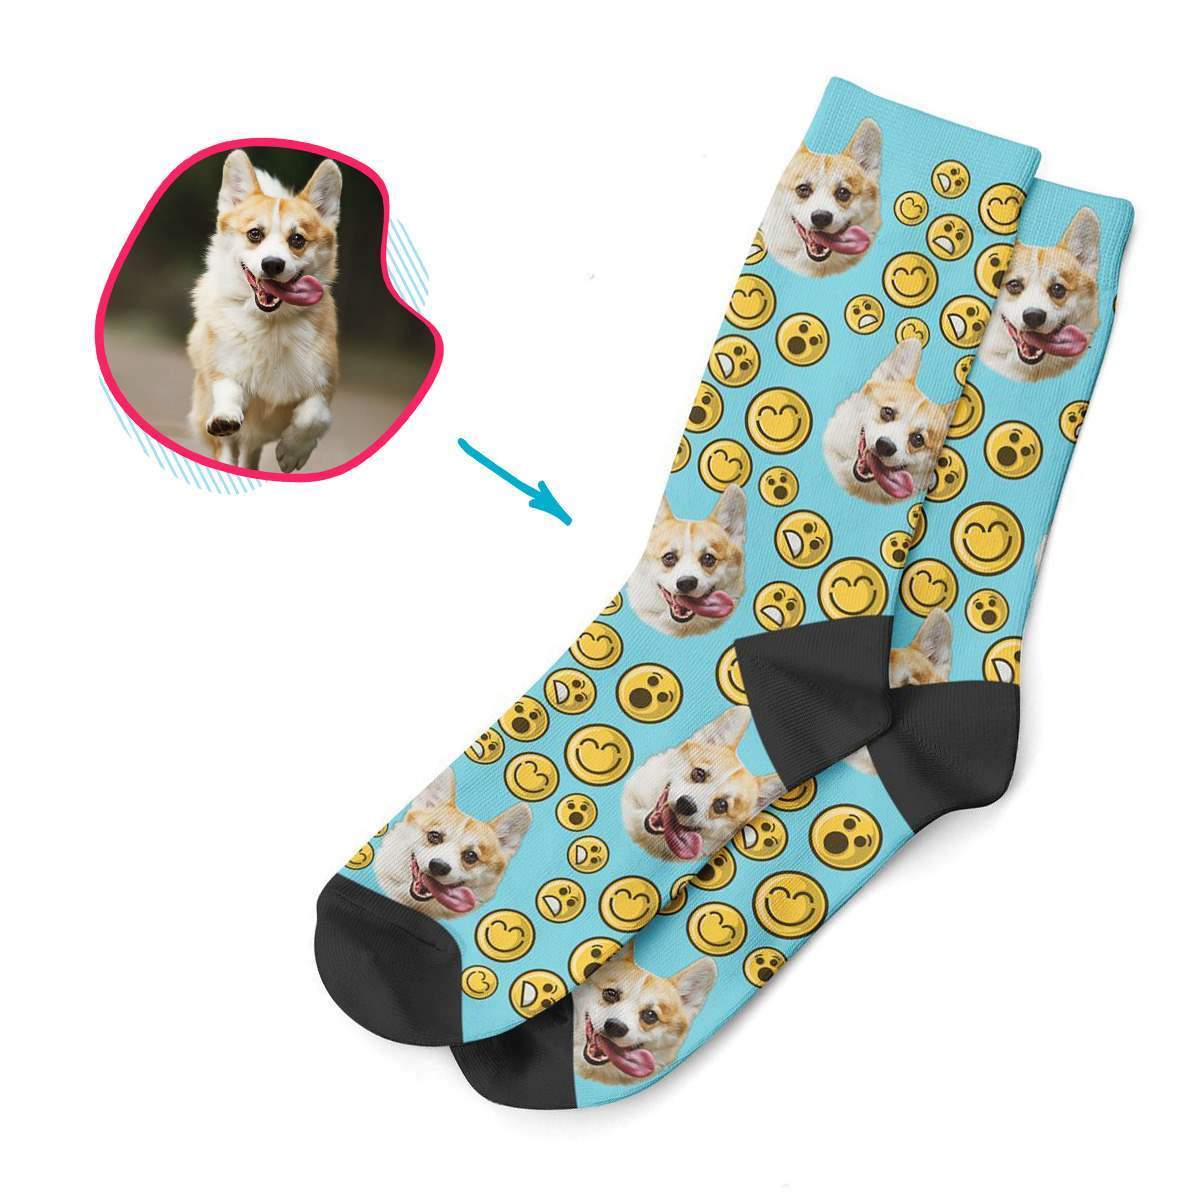 blue Smiles socks personalized with photo of face printed on them